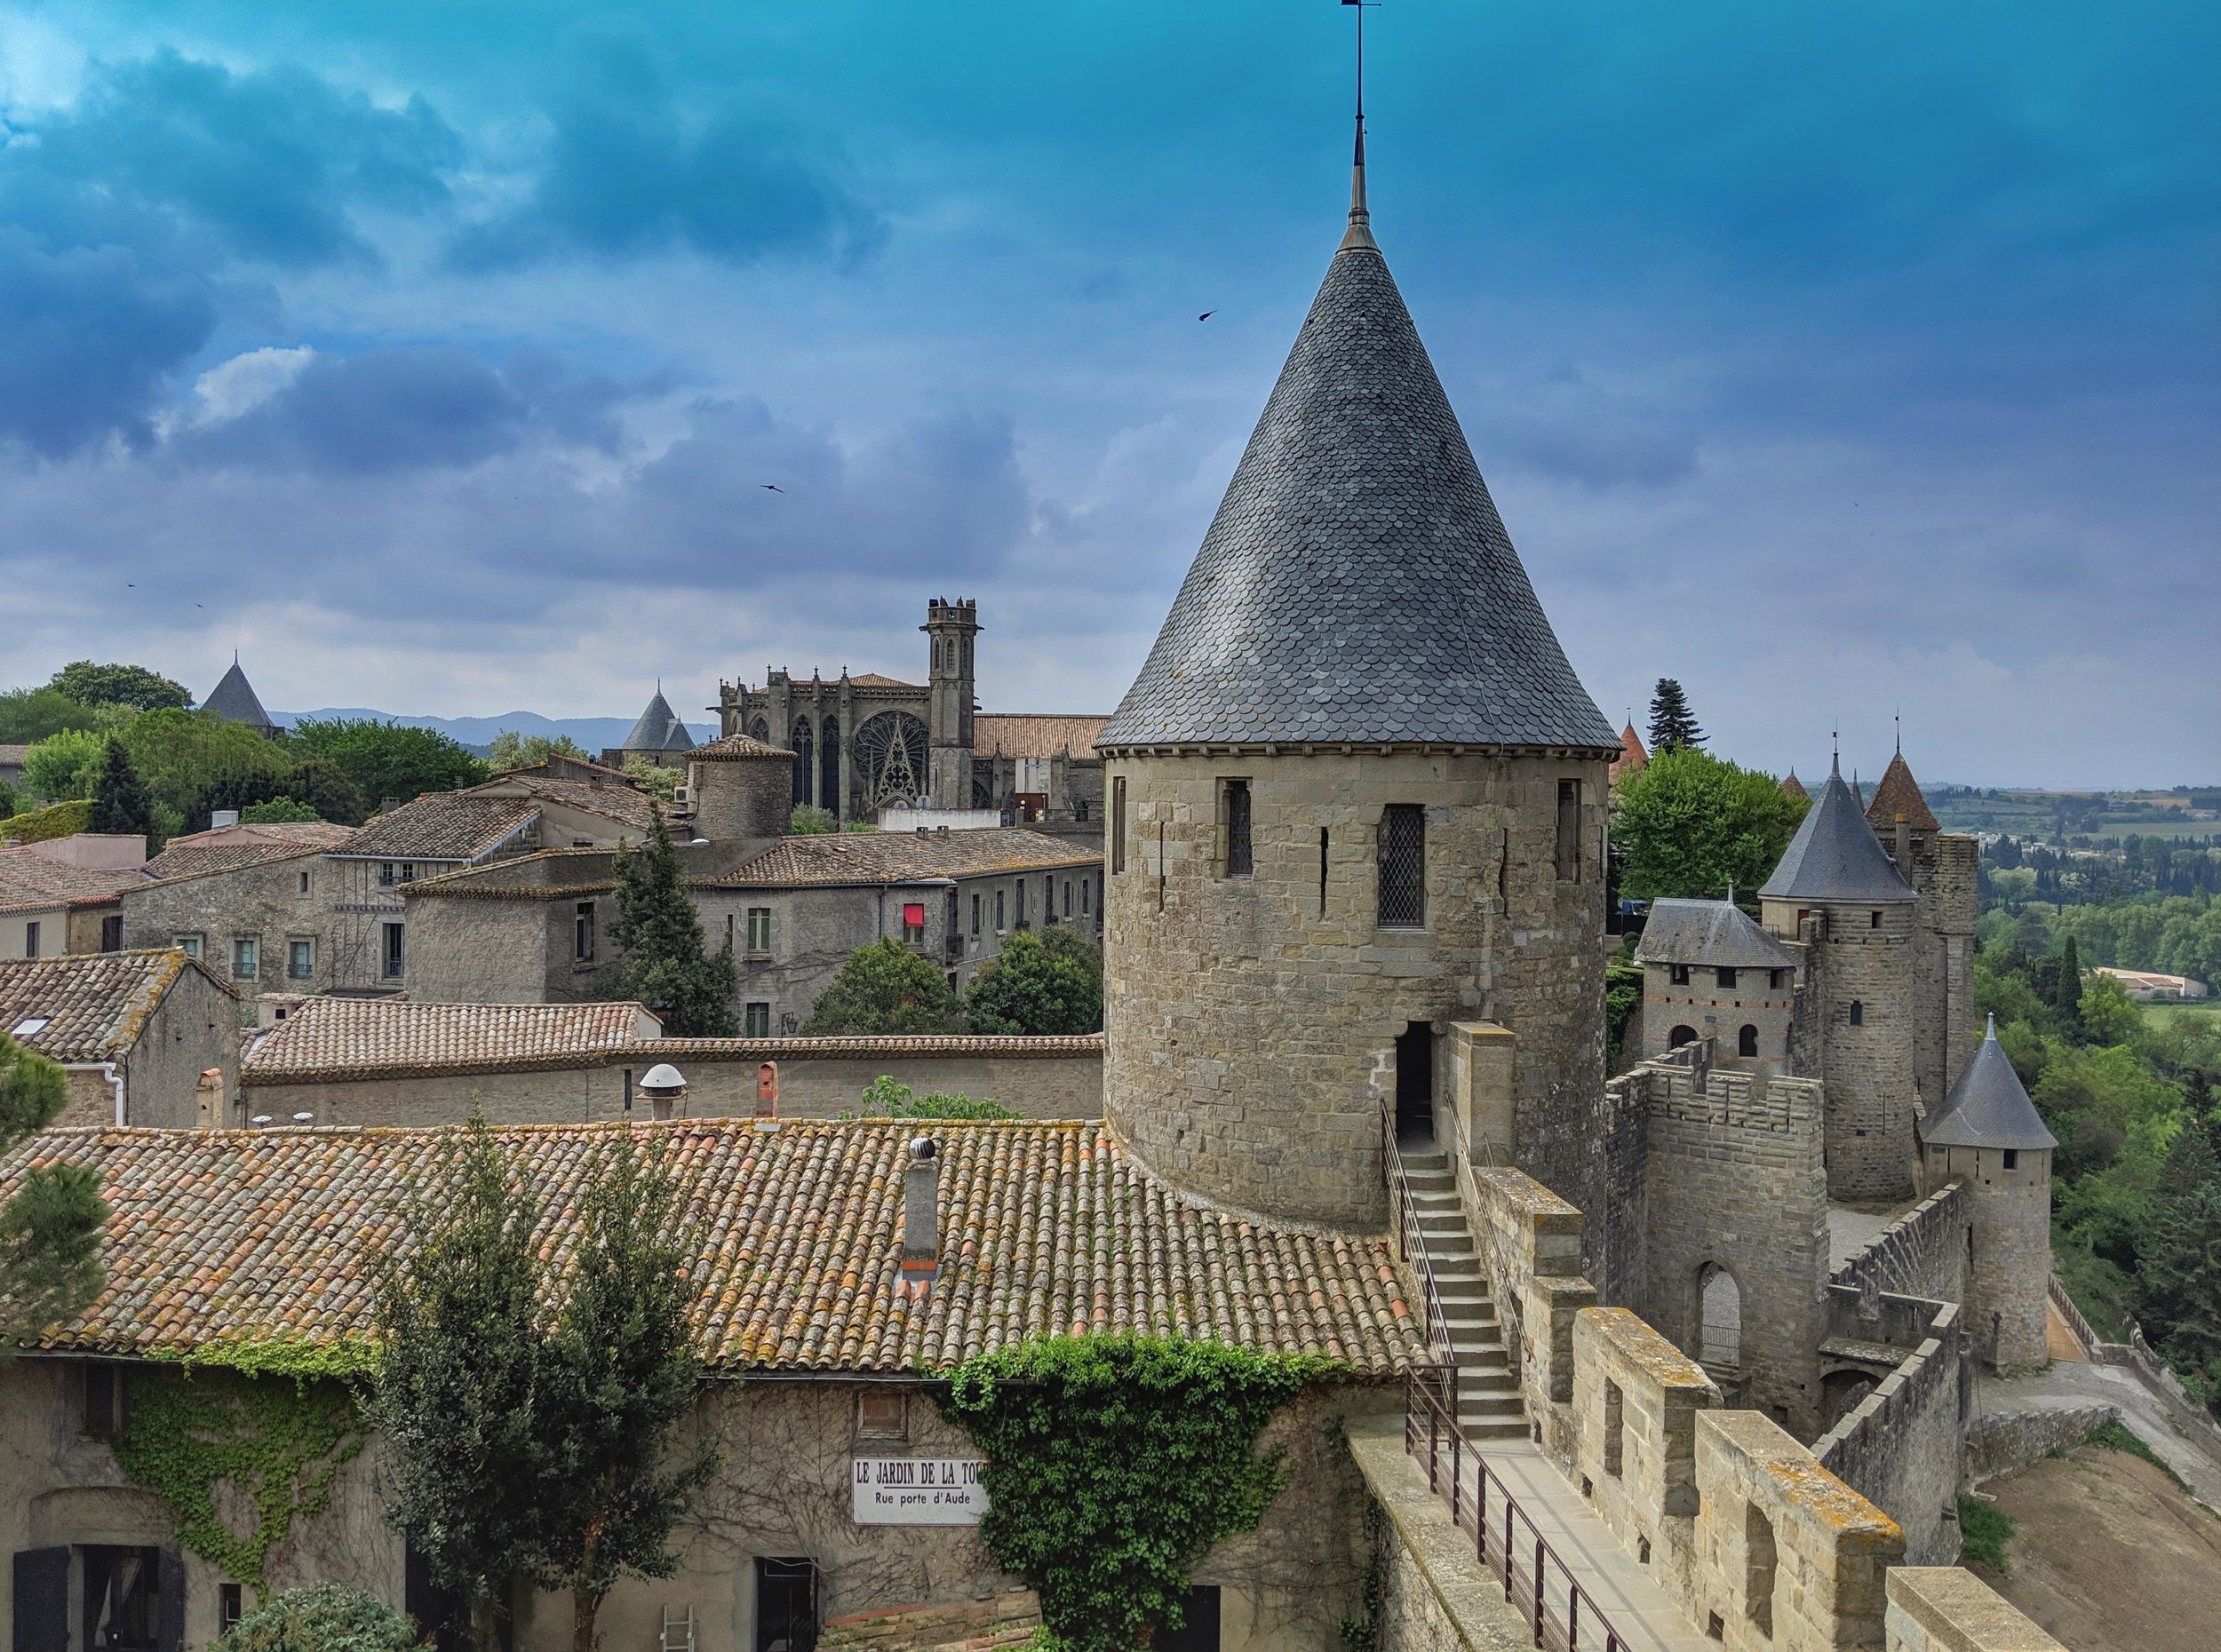 Wandering the ramparts at Carcassonne